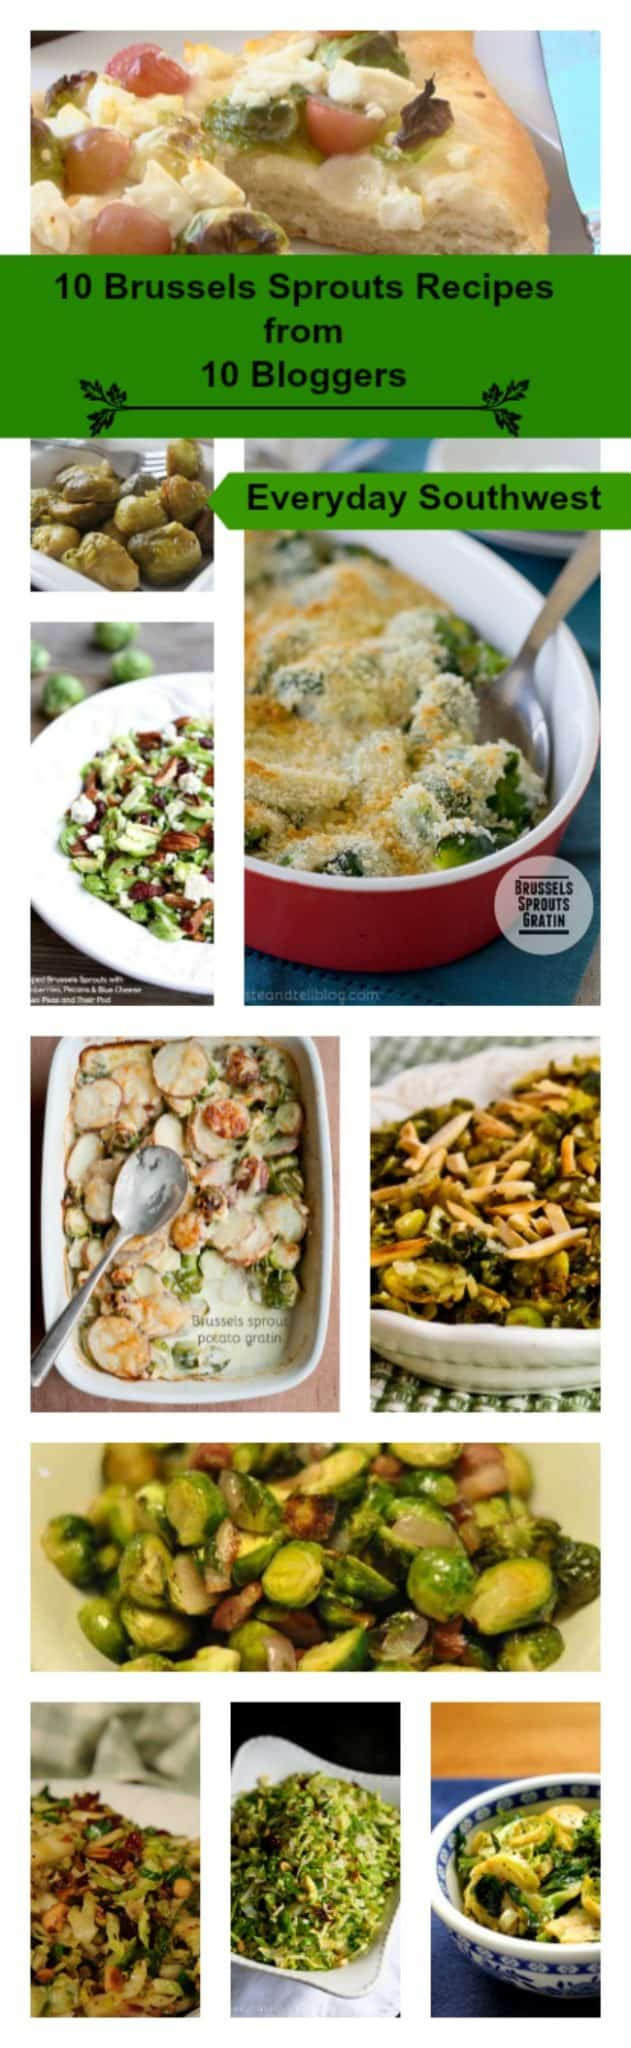 10 Brussels Sprouts Recipe